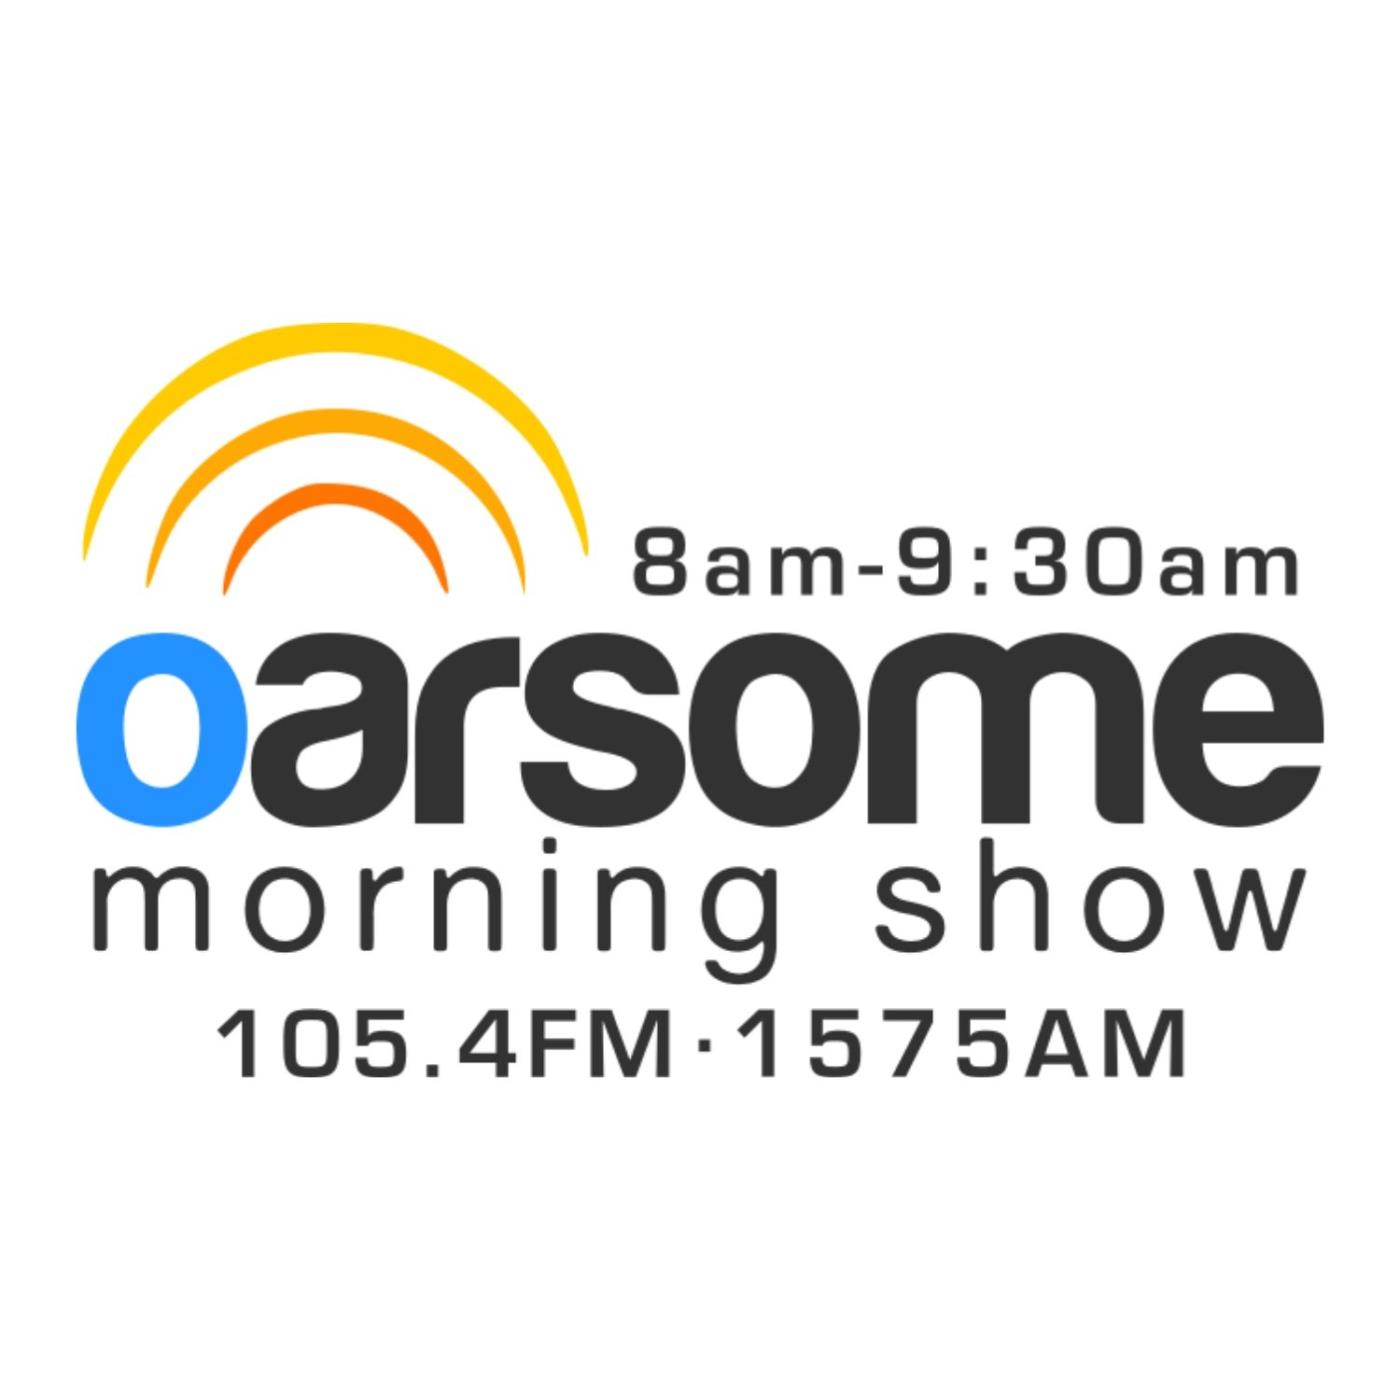 OARsome Morning Show - 27-01-2021 - Alliance Francaise Dunedin - David Moir